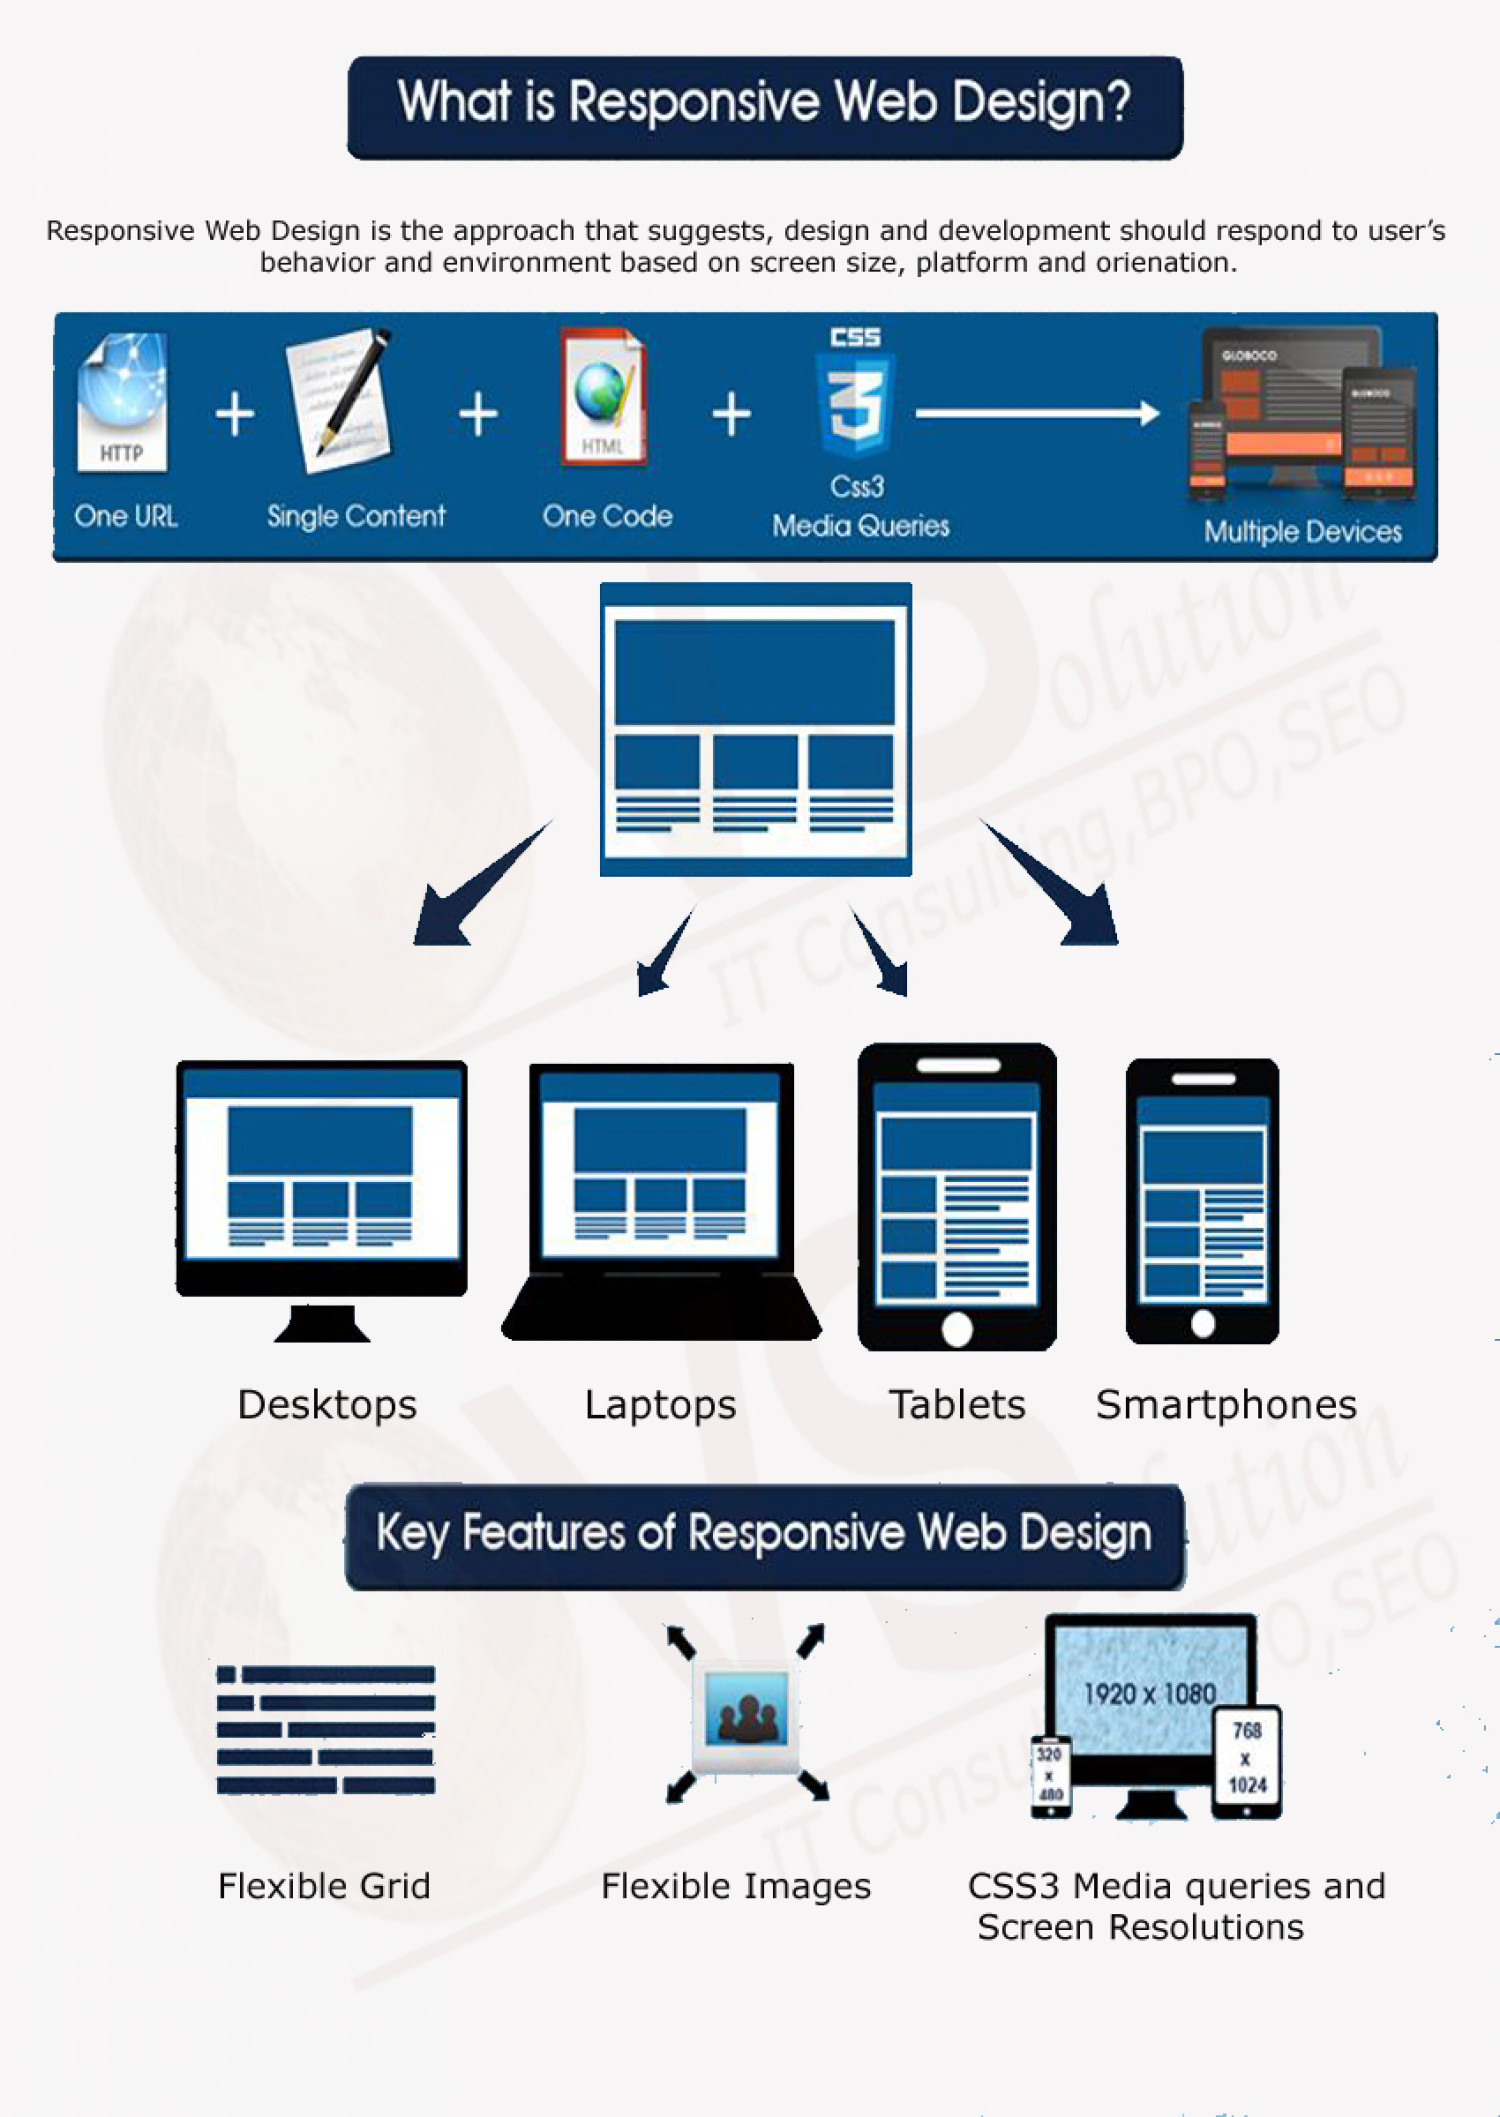 Responsive Web Design - An Overview Infographic